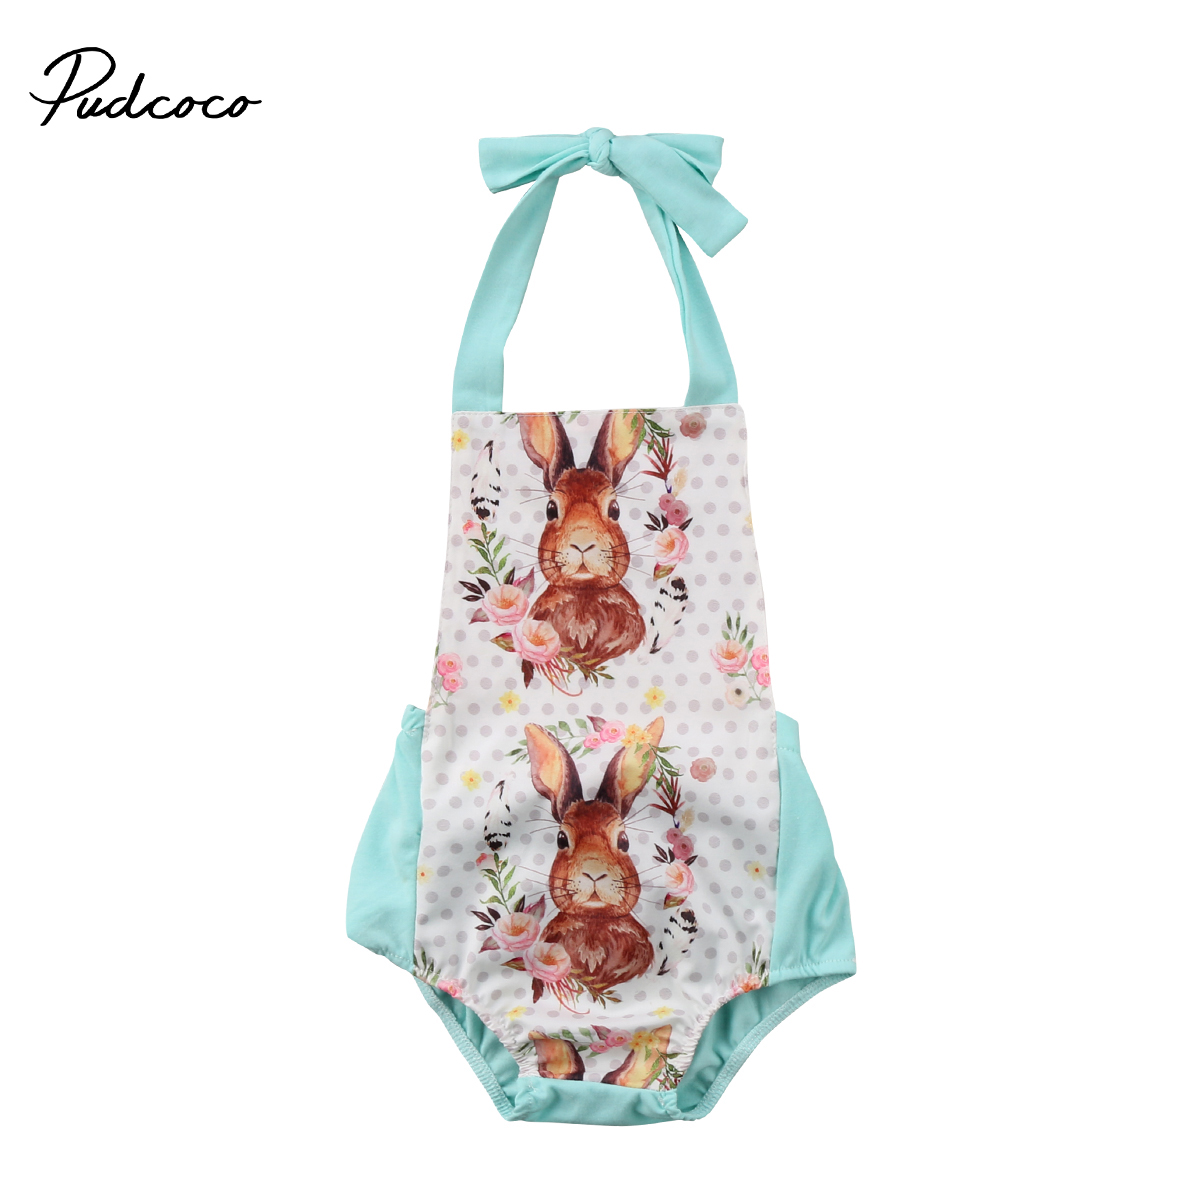 Pudcoco Infant Baby Girls Halter Romper Summer Backless Jumpsuit Floral Outfits Easter Clothes pudcoco newborn baby girl clothes 2017 summer sleeveless floral romper backless jumpsuit sunsuit children clothes